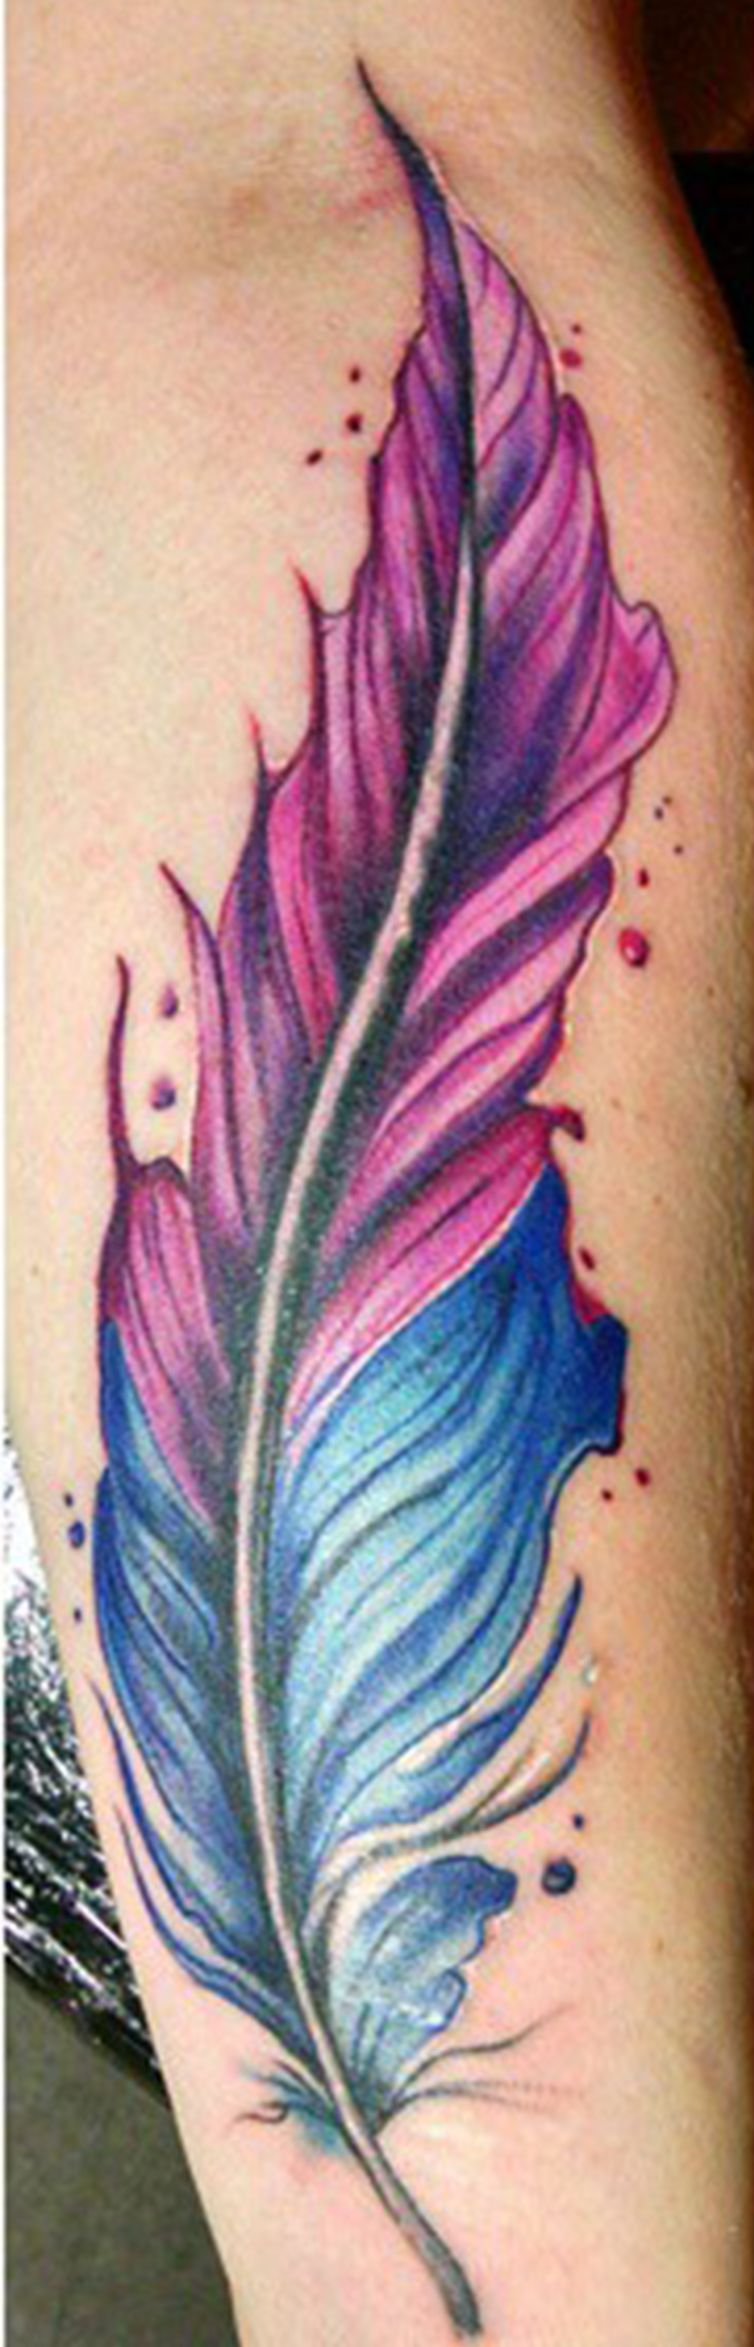 Book Cover Watercolor Tattoos : Freehand water color tattoo feather watercolor